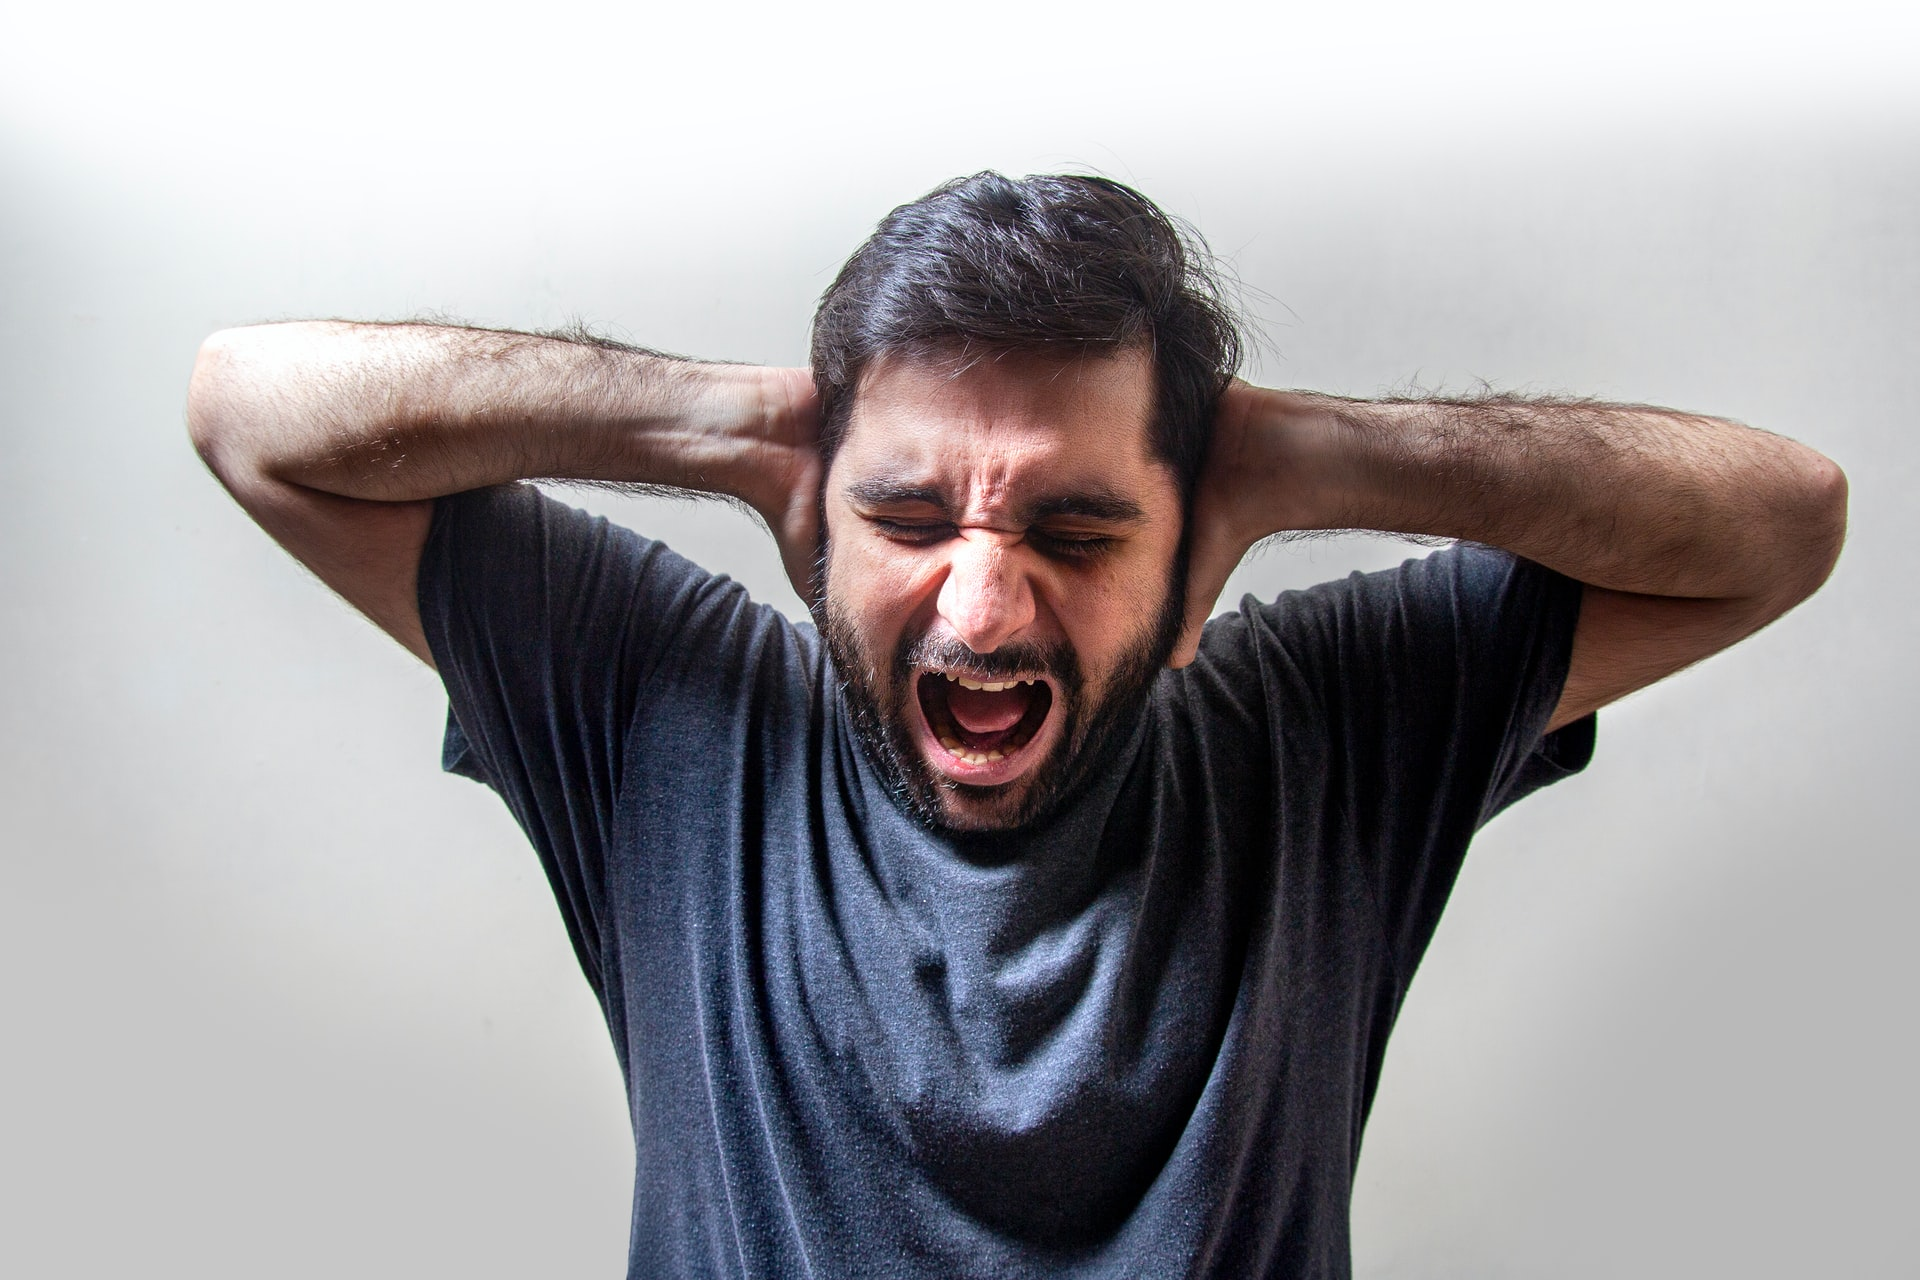 6 Anger Management Exercises To Change Your Life